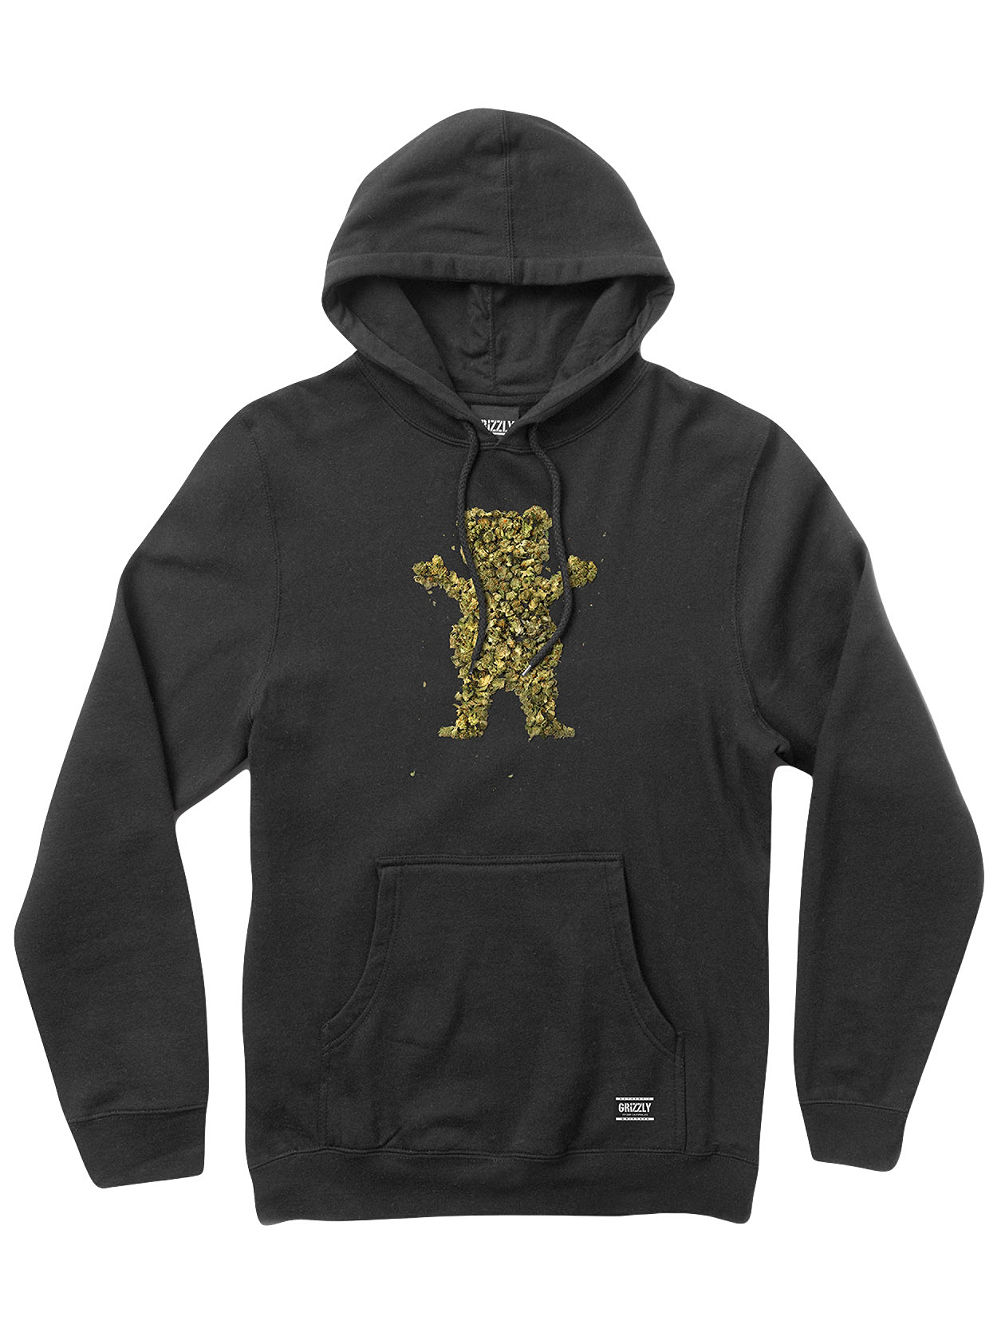 Roll Up Bear Hoodie